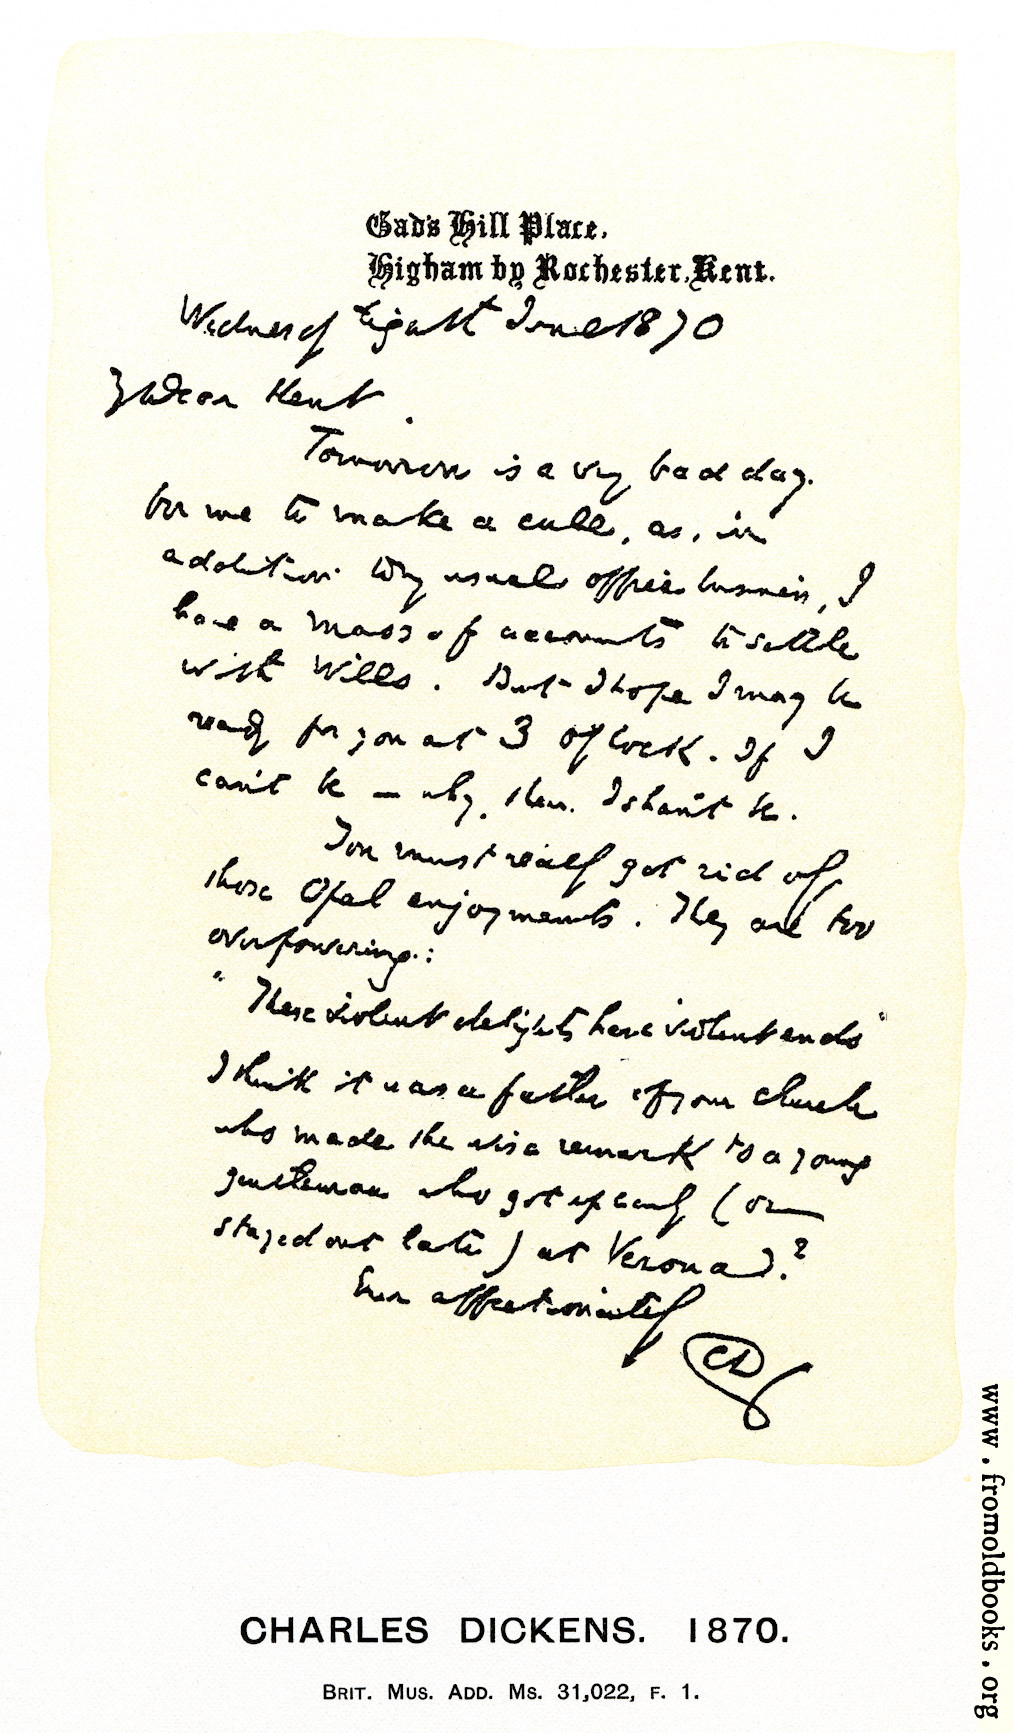 [Picture: Charles Dickens: Letter Written the Day before His Death]